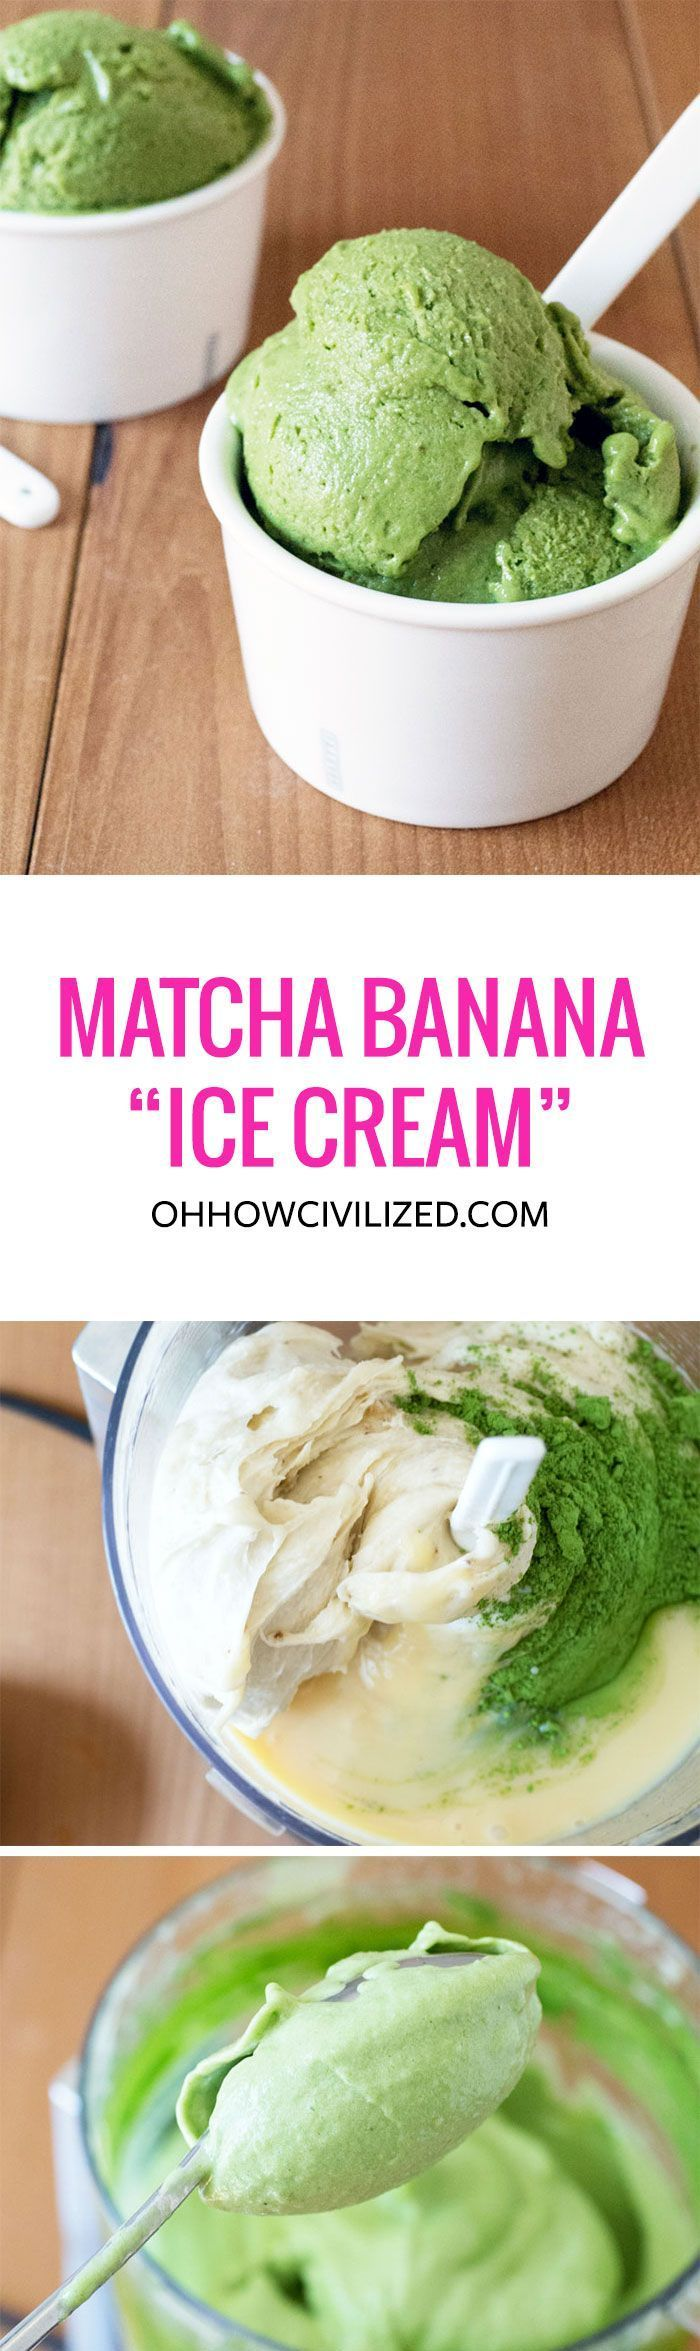 "Matcha Banana ""Ice Cream"" 